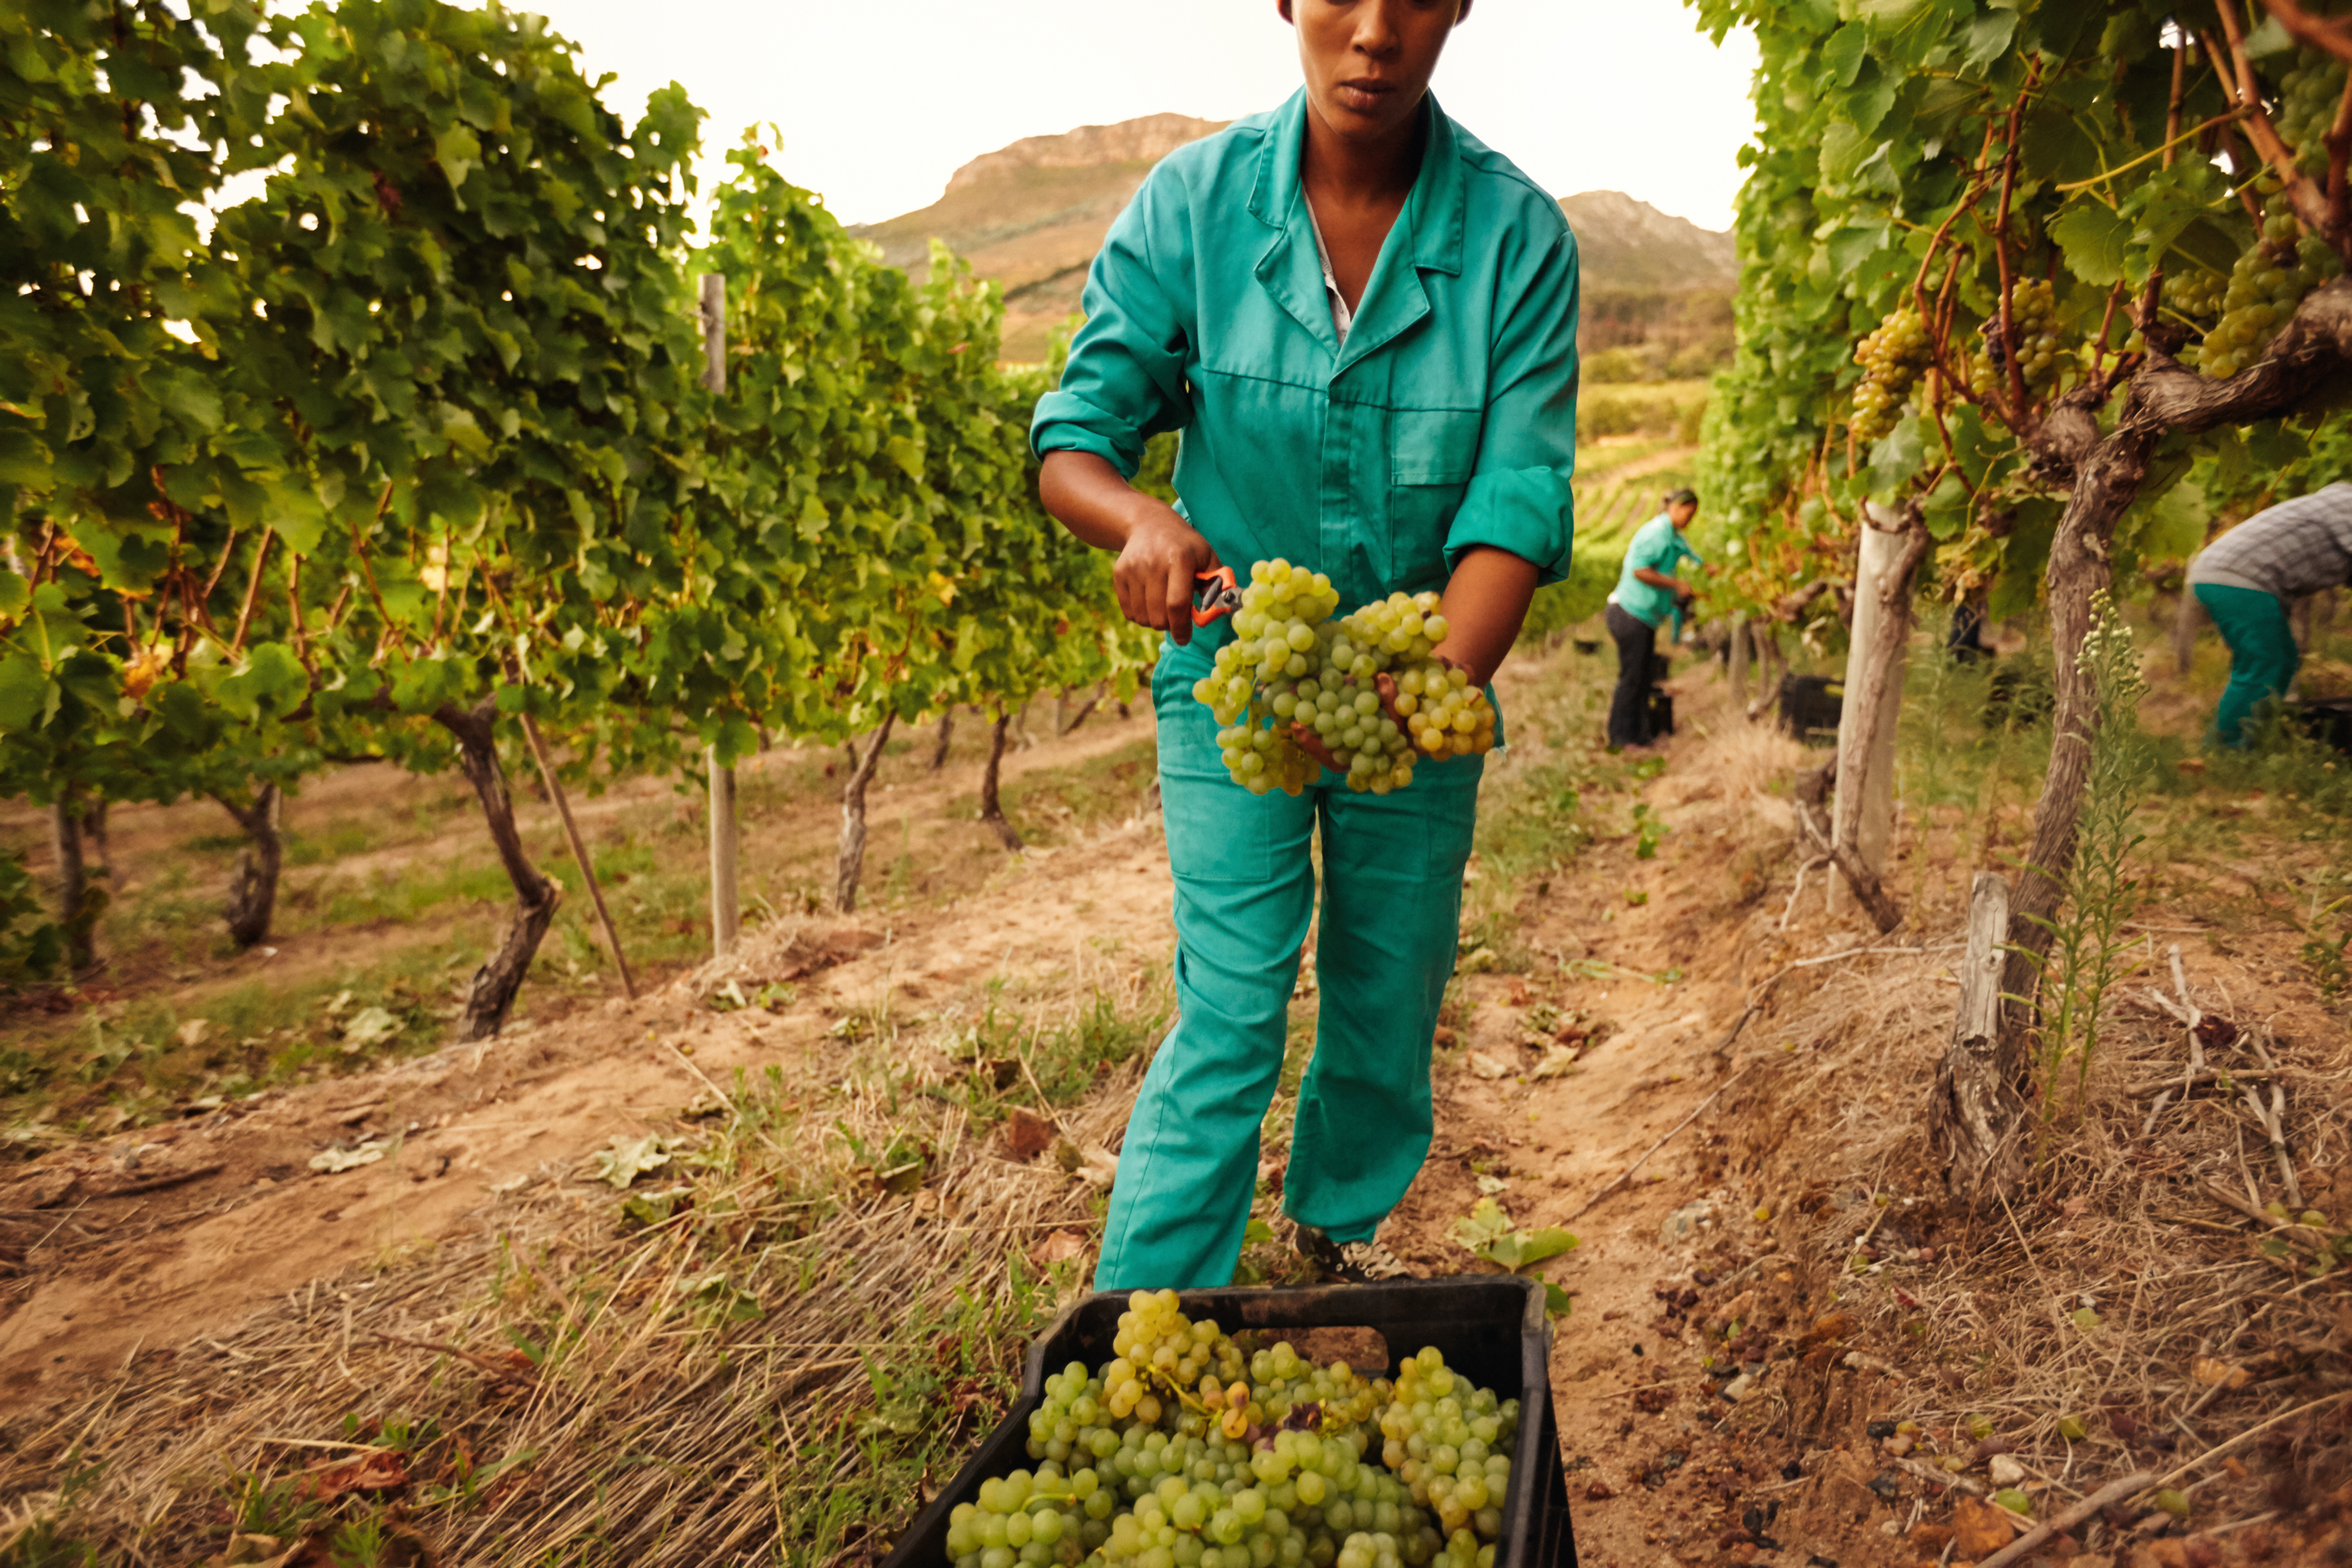 Women harvesting grapes in vineyard and putting the bunch of grapes into a plastic crate.